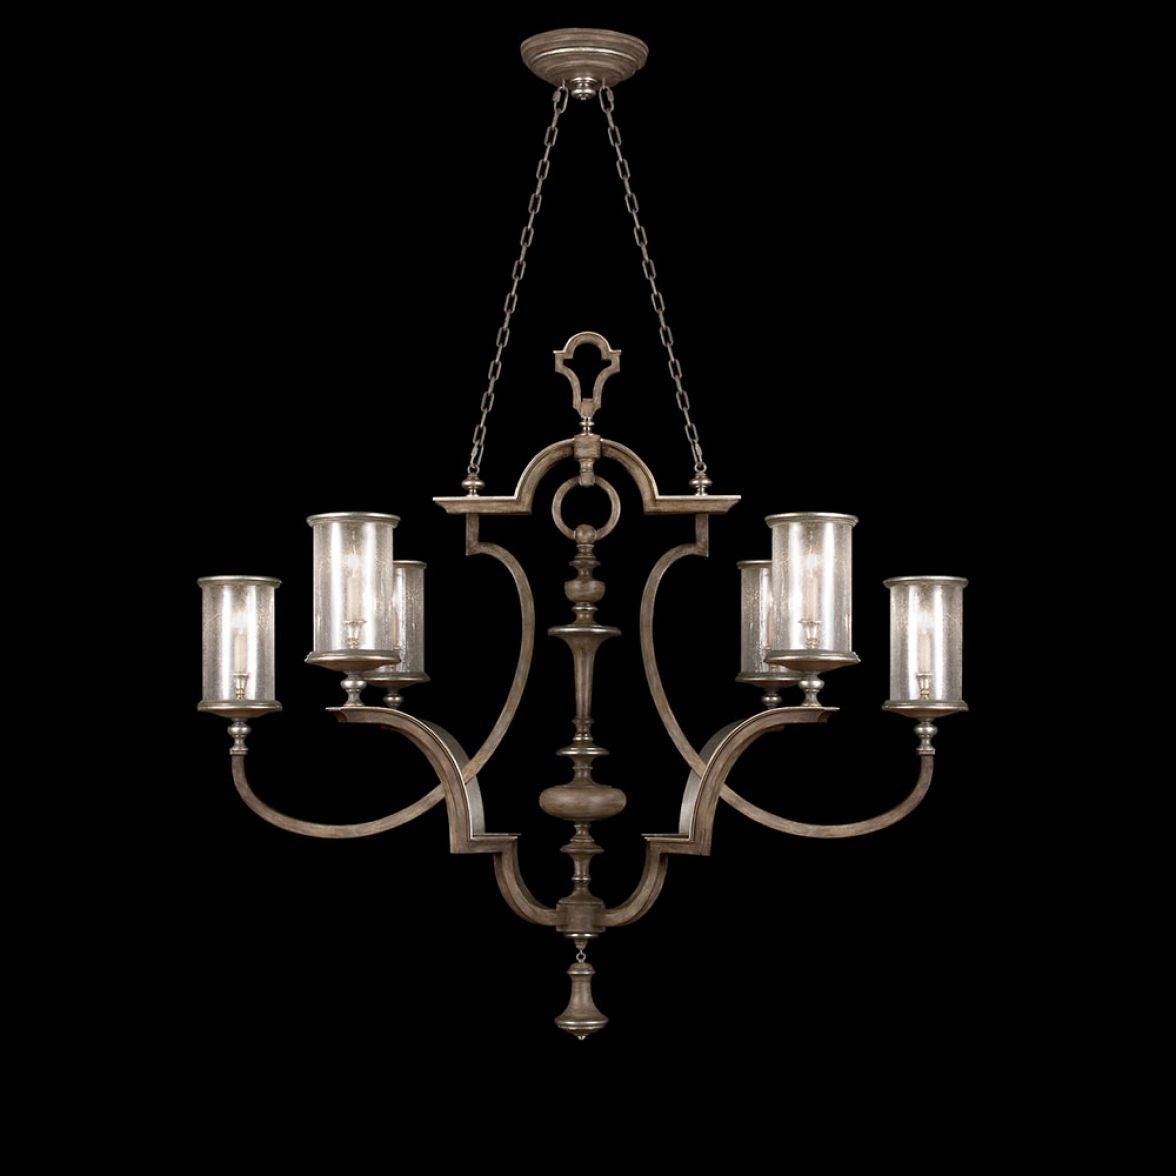 Villa Vista chandelier